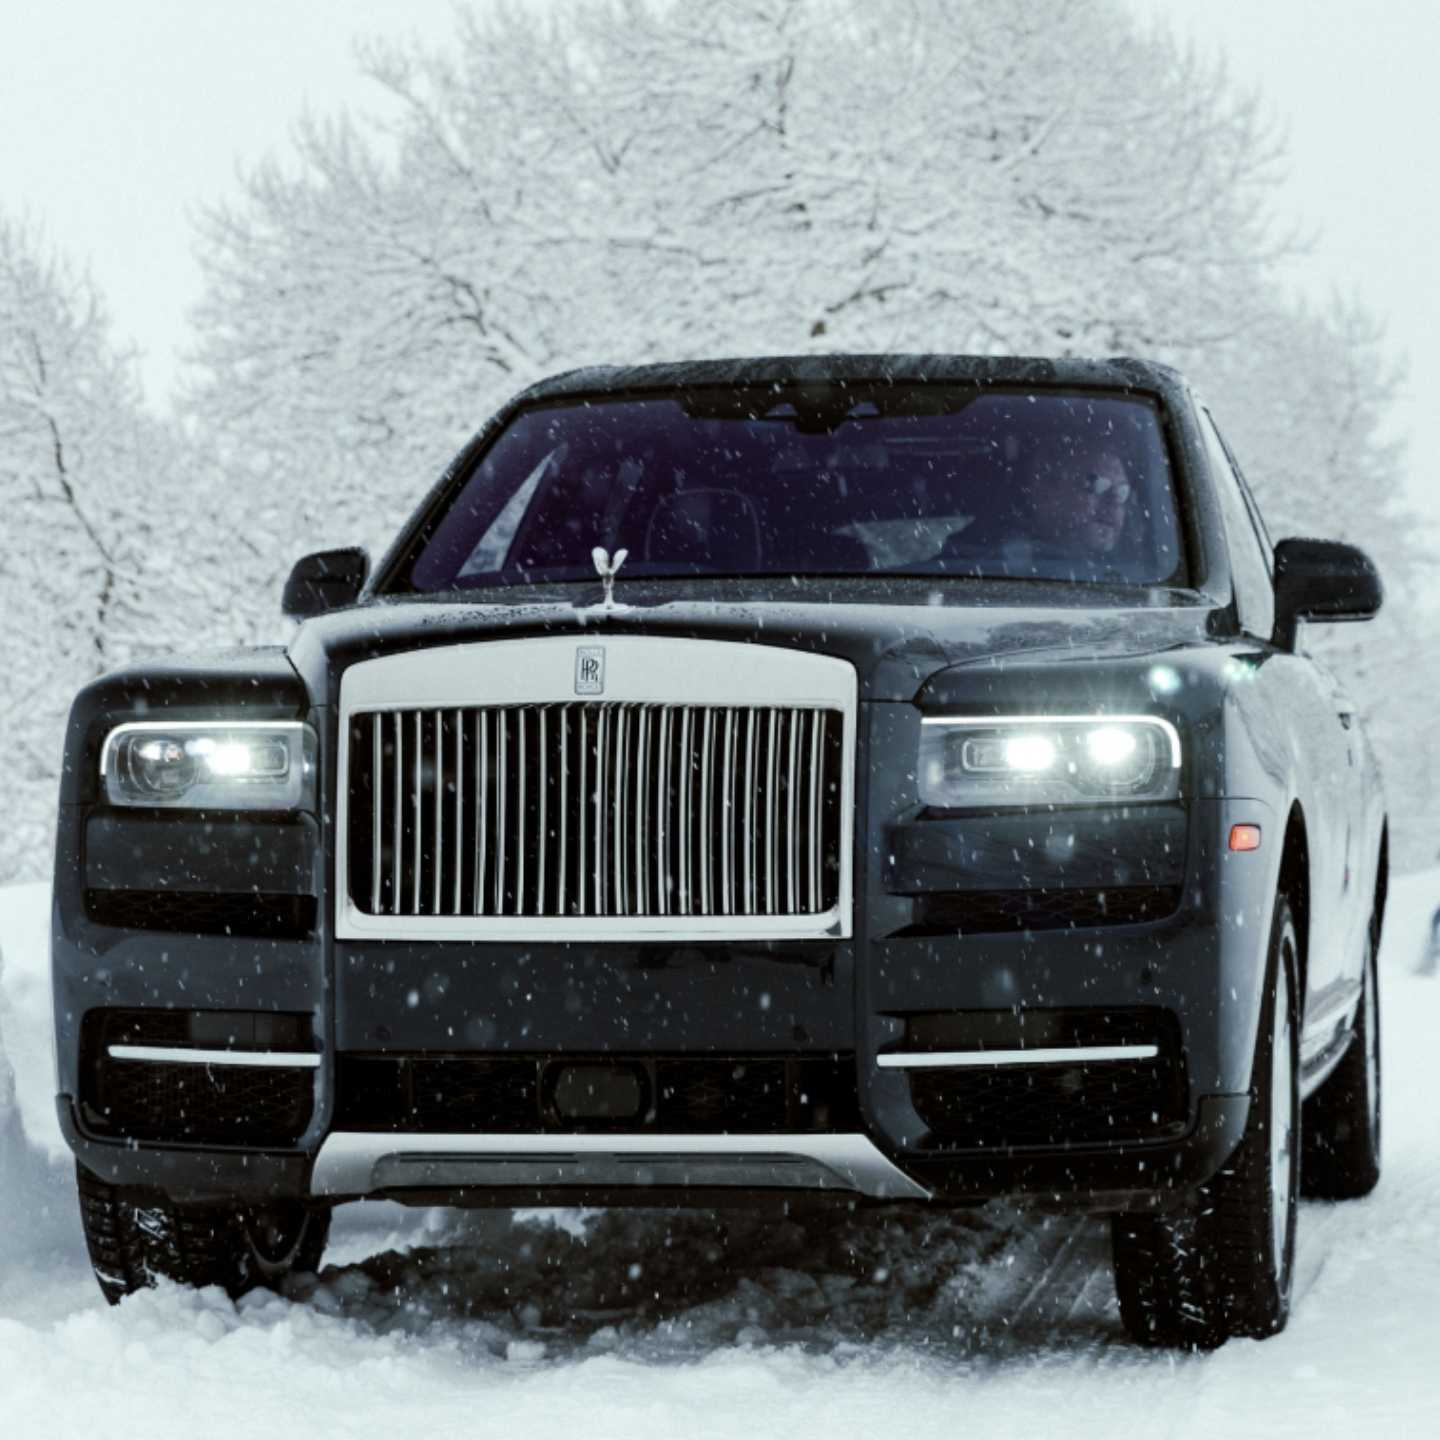 Rolls-Royce, Denver, 360 MAGAZINE, luxury